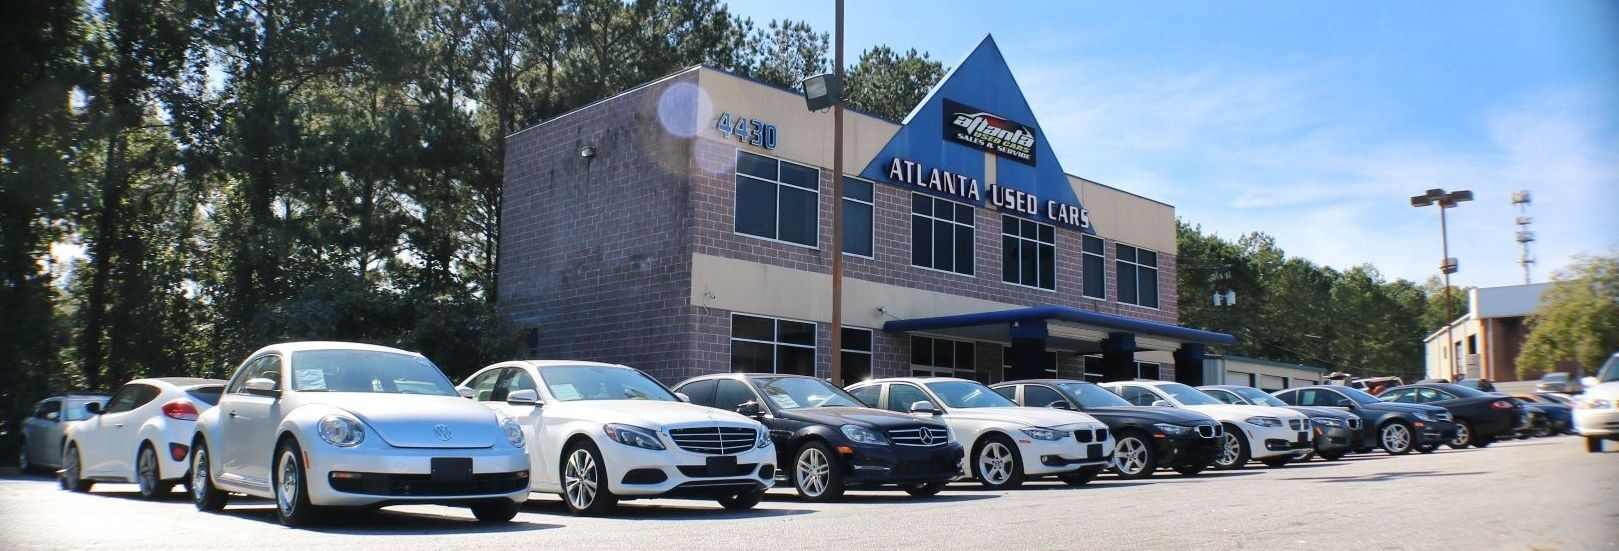 Lexus Dealership Atlanta >> Used Car Dealership Lilburn GA | Atlanta Used Cars Sales